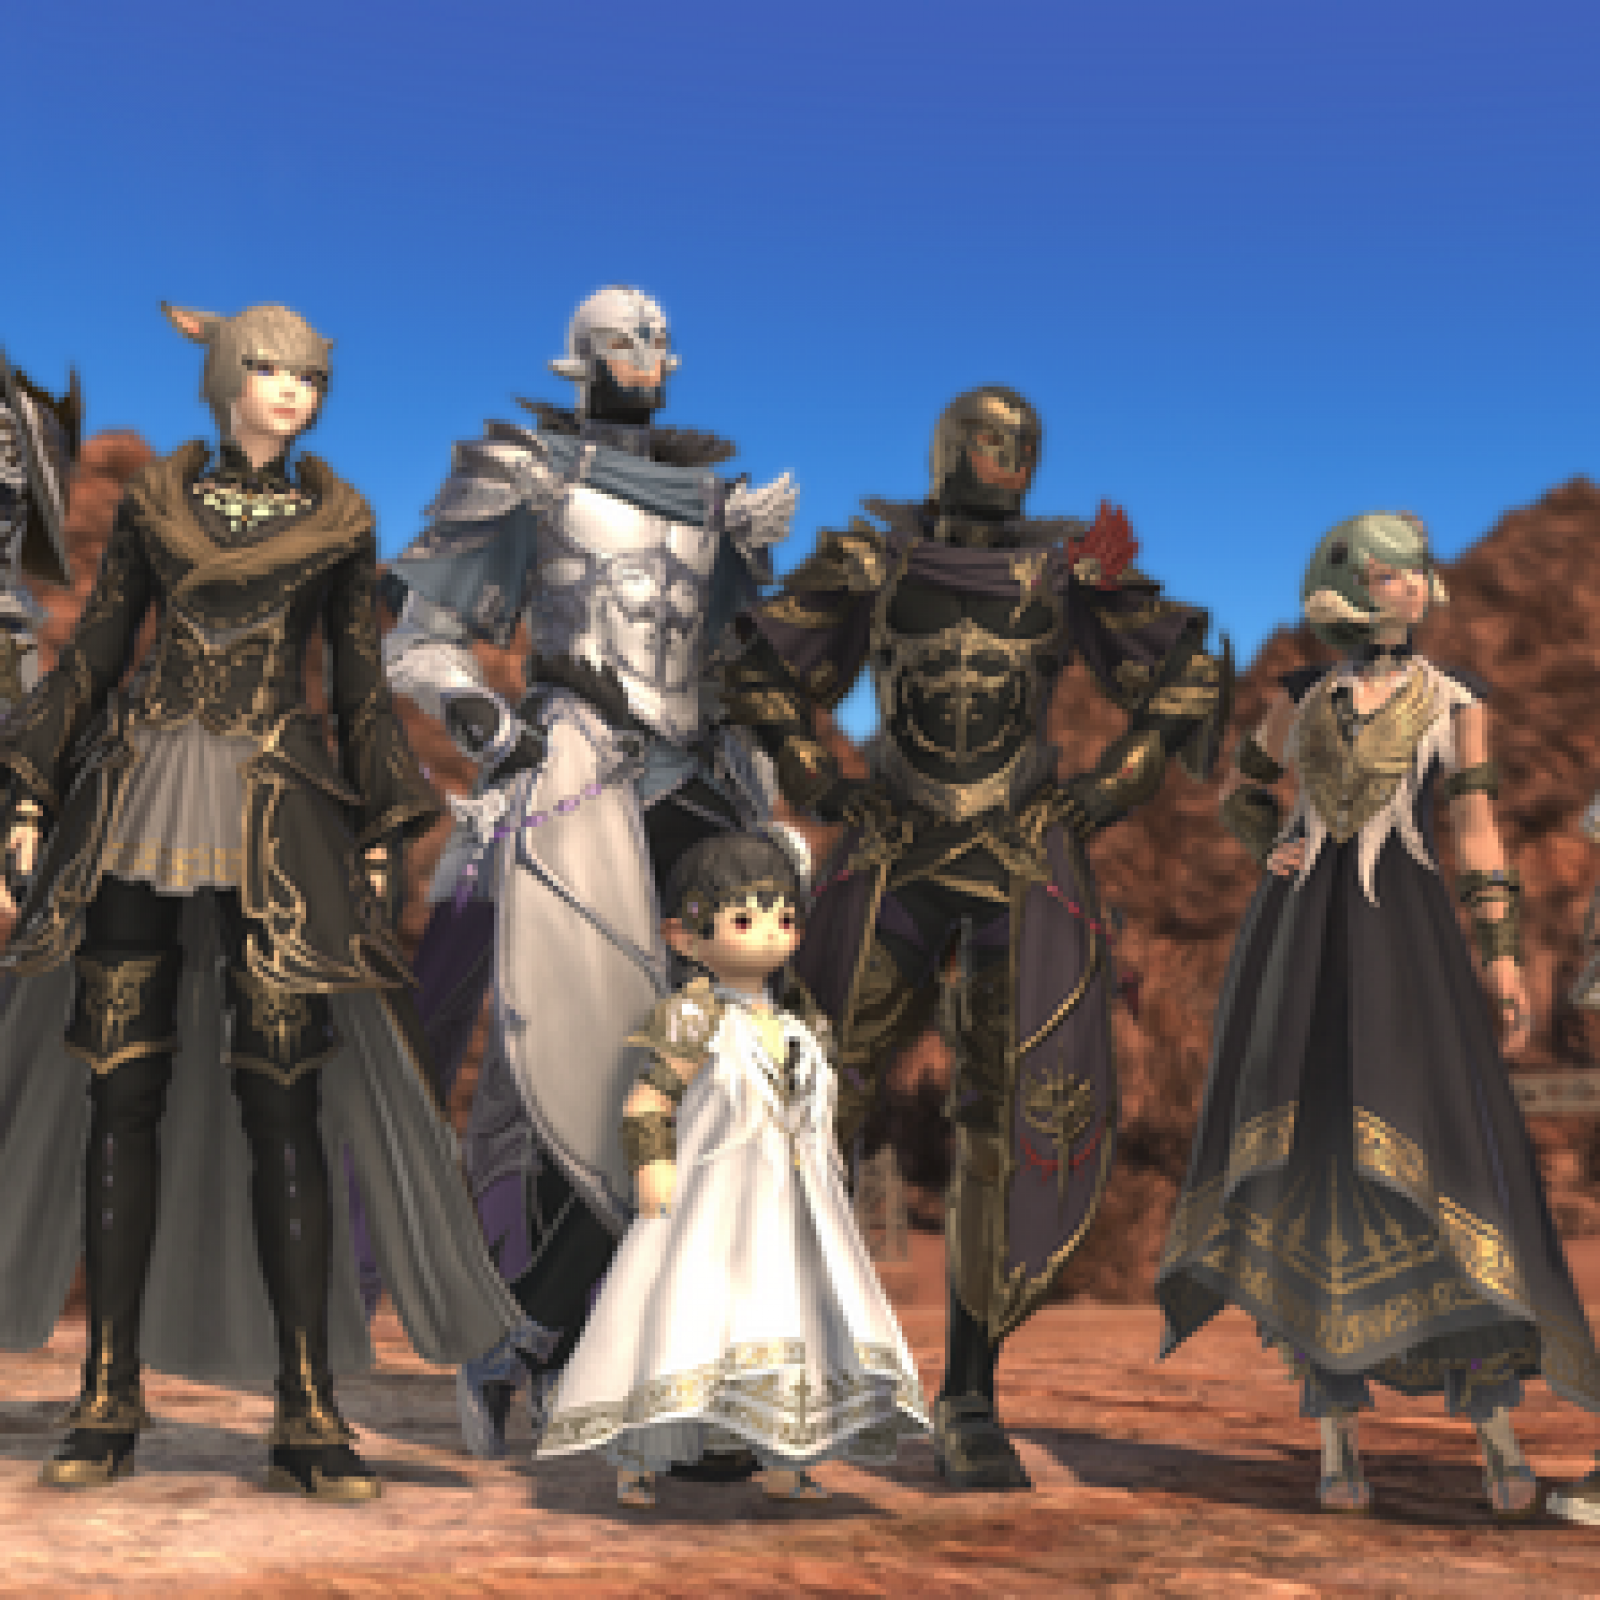 FFXIV' 5 01 Patch Notes: First Shadowbringers Update Adds New Quests